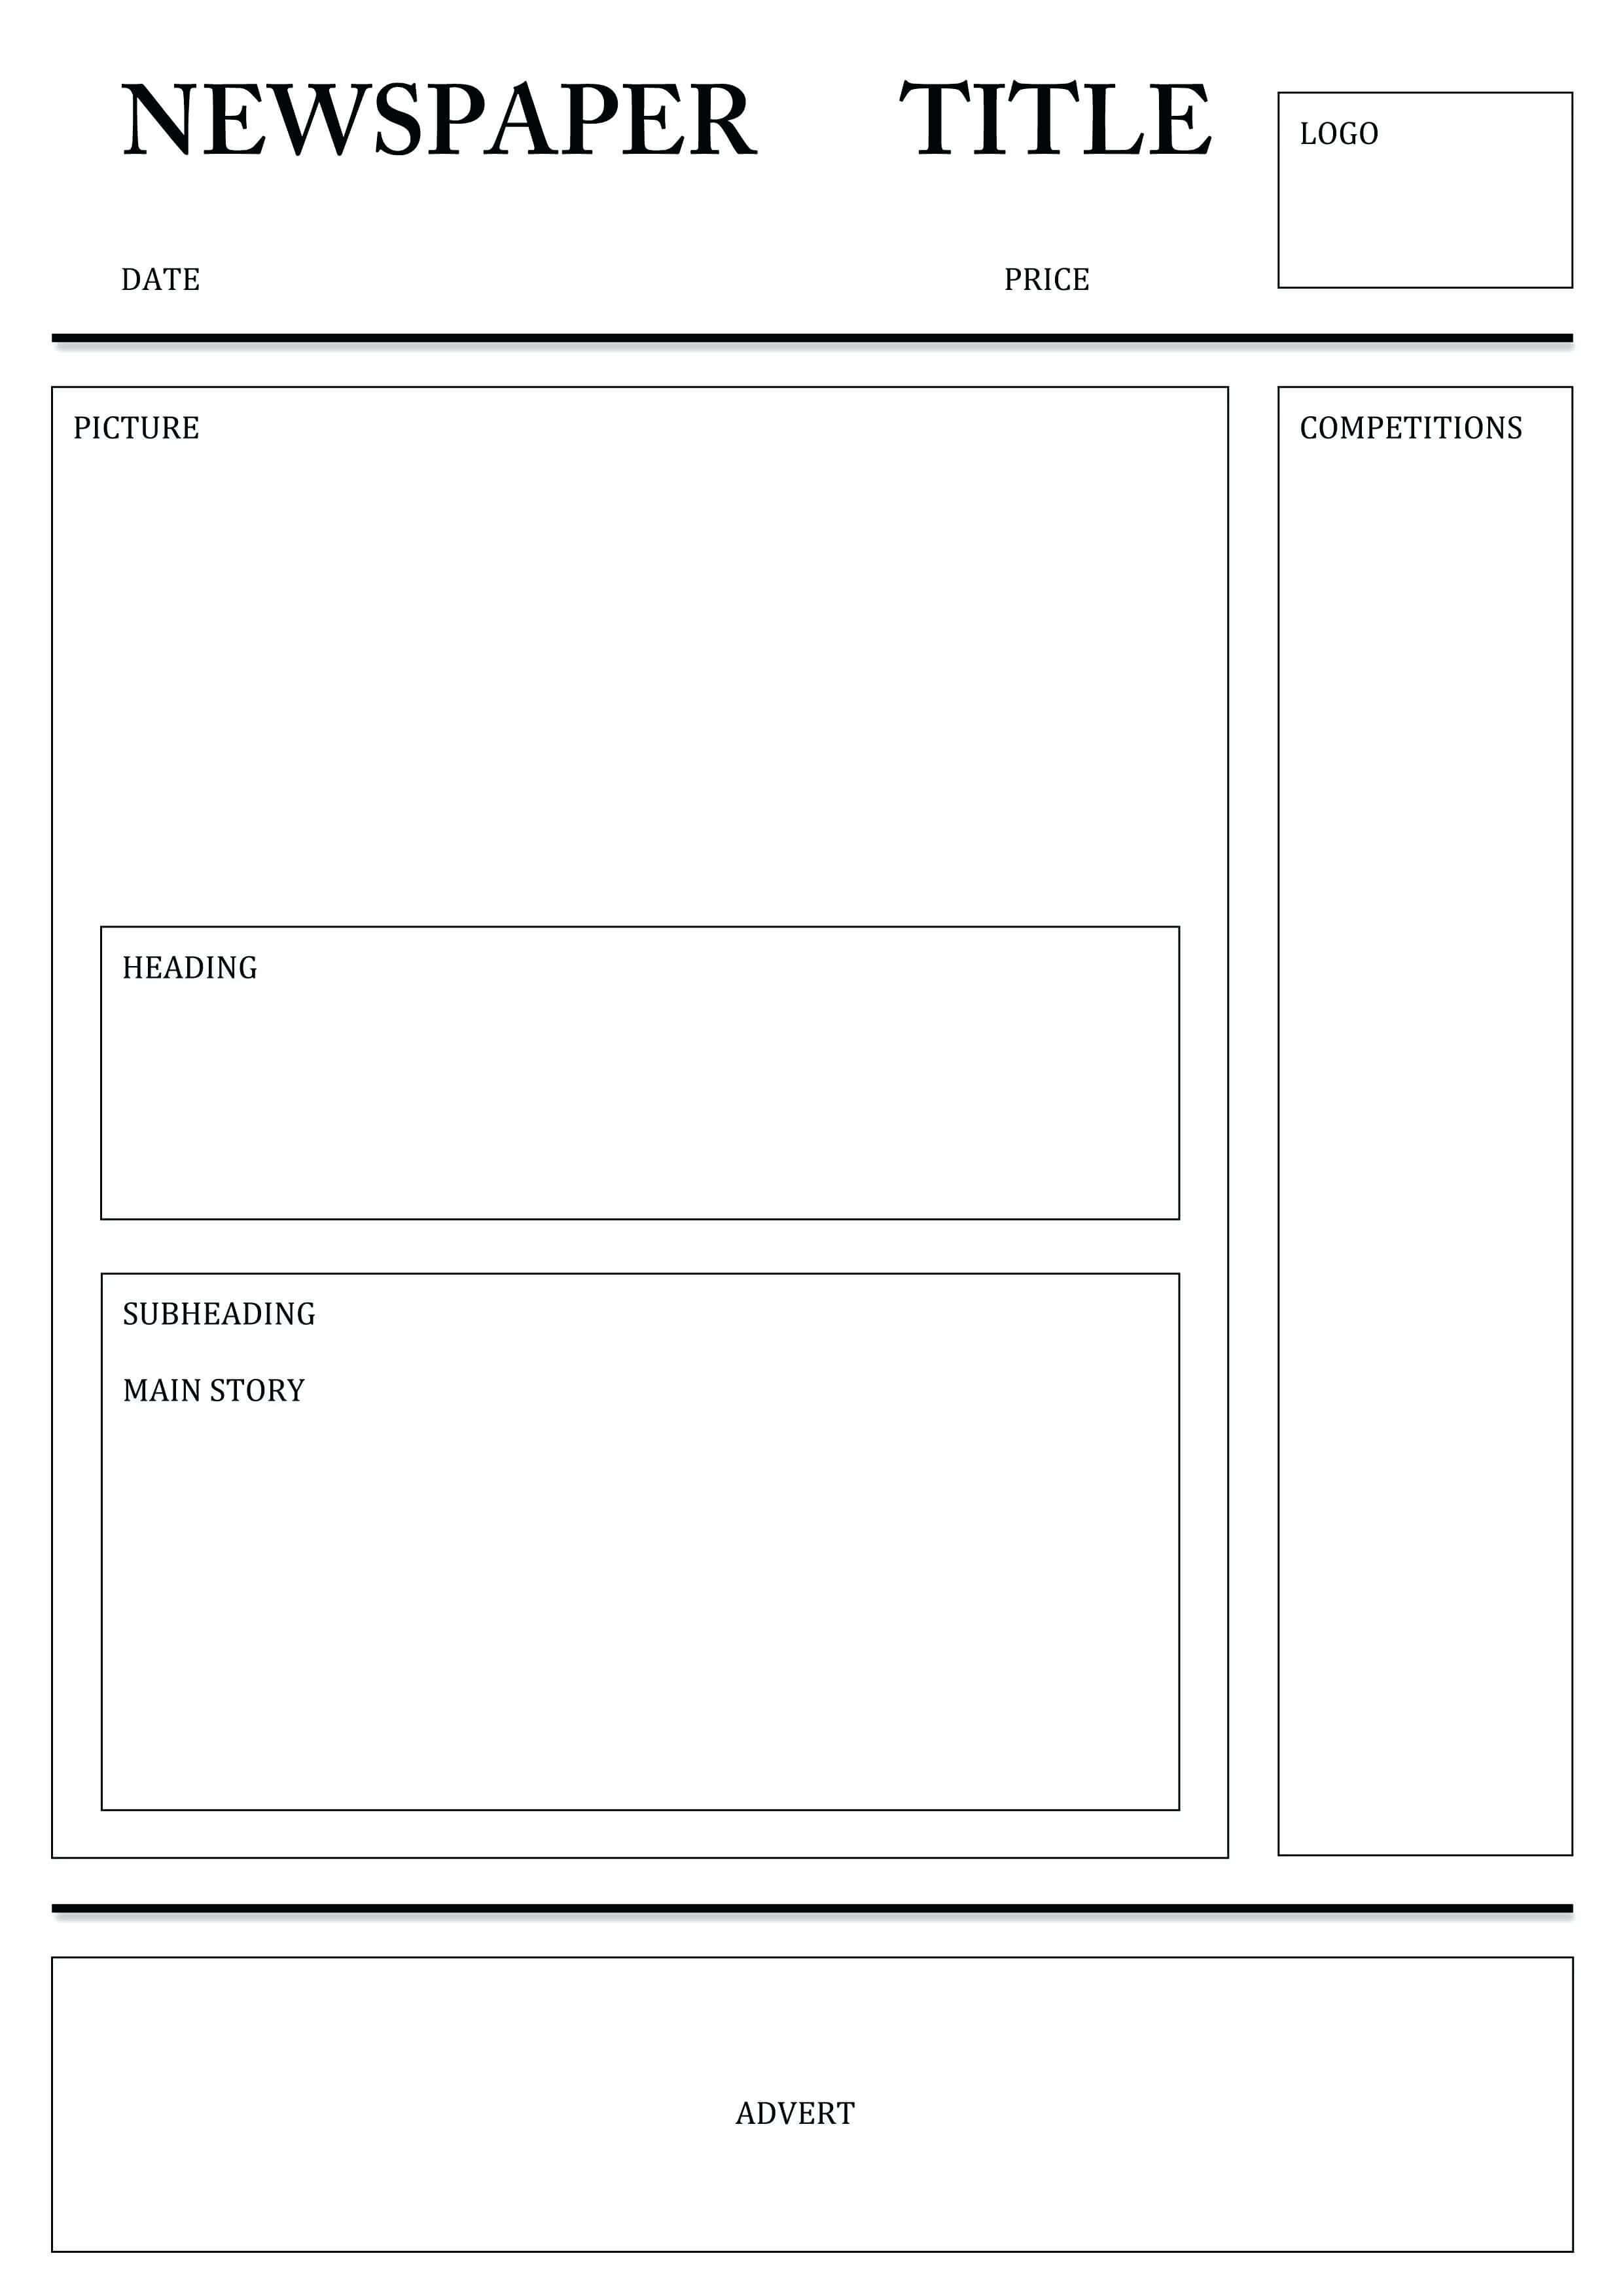 Newspaper Template For Word Pdf Excel | Printable Templates Within Blank Newspaper Template For Word